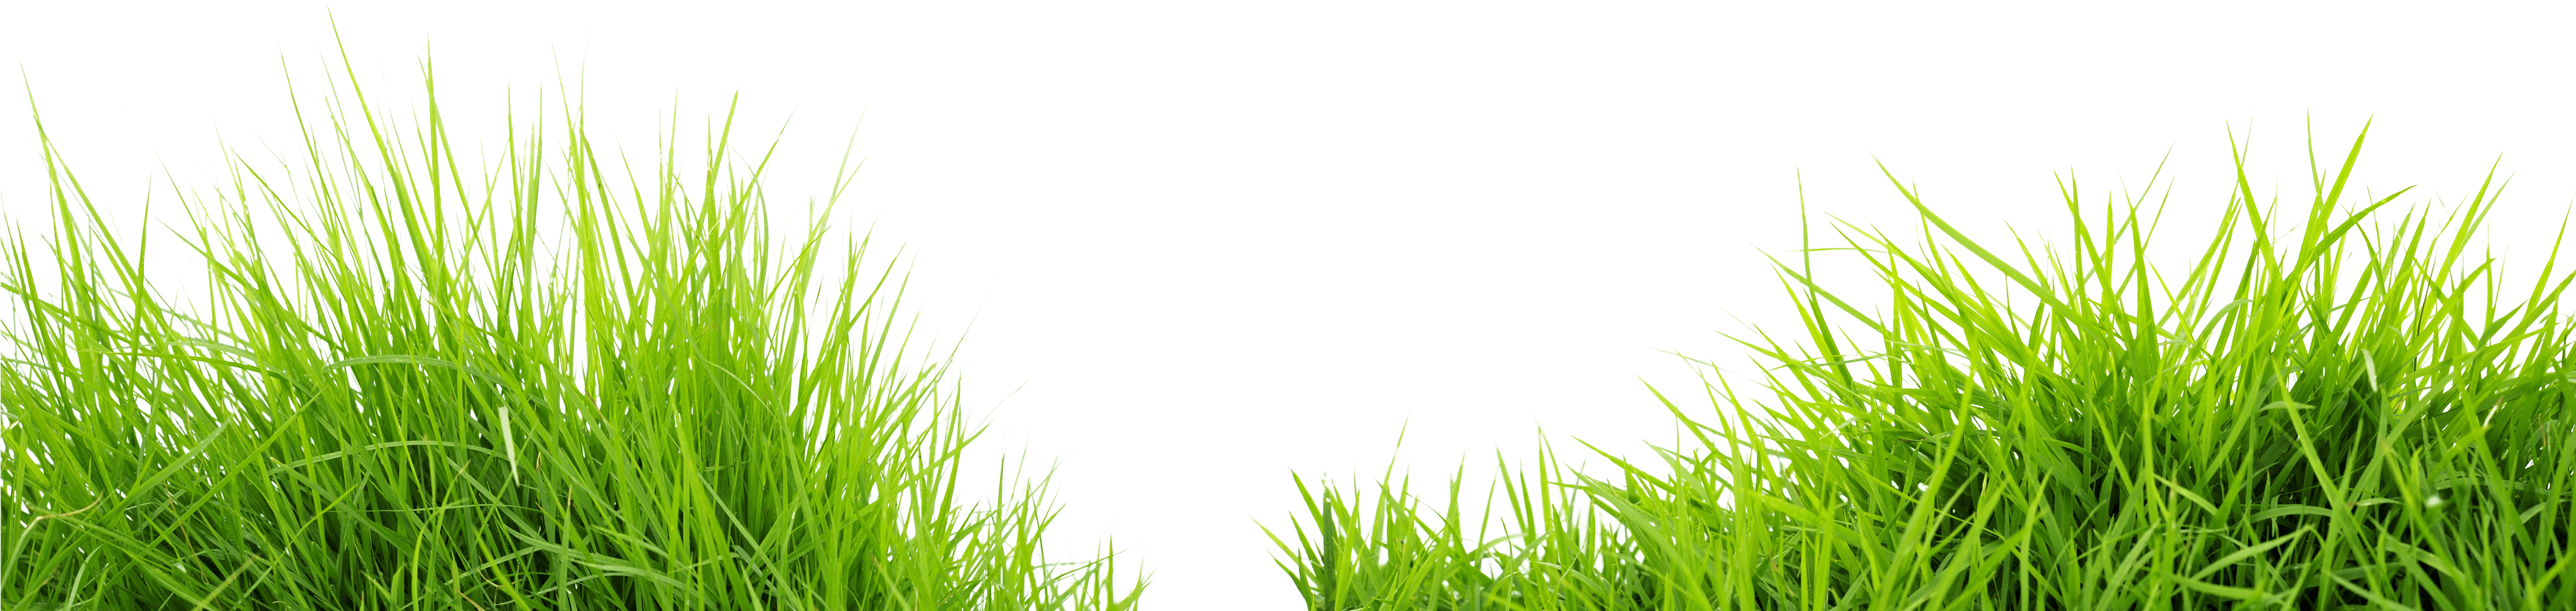 Download Grass Png Image Green Grass Png Picture HQ PNG.